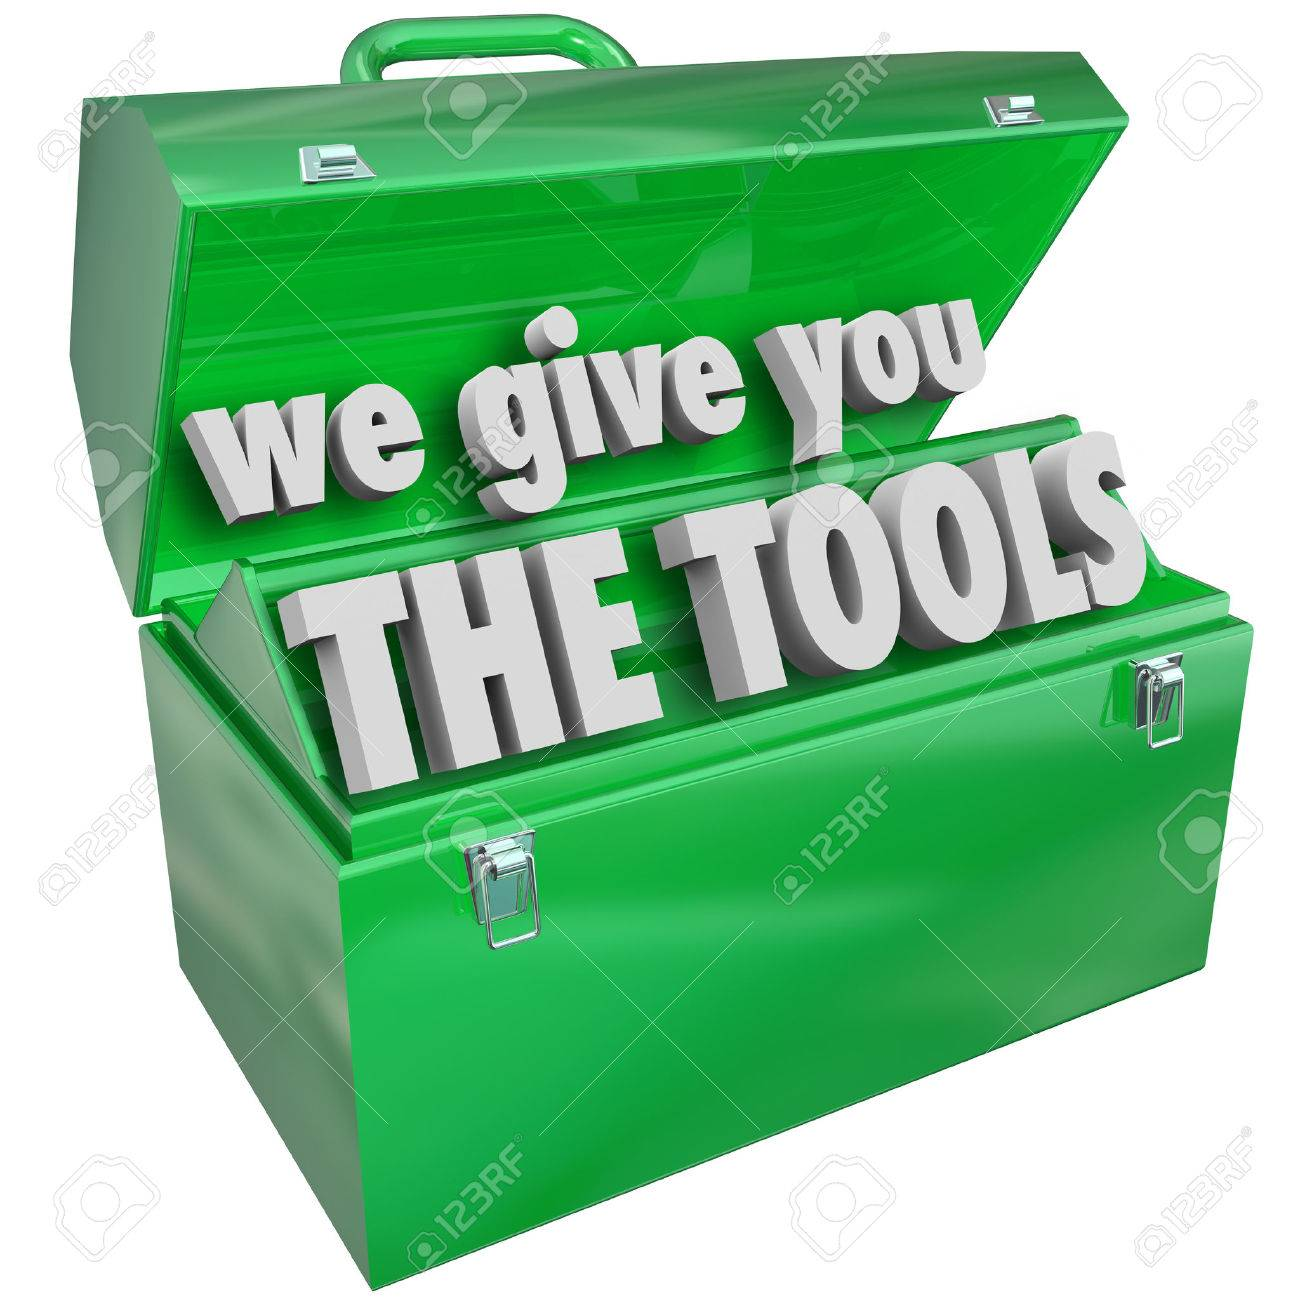 we give you the tools green metal toolbox words to illustrate the tools green metal toolbox words to illustrate skills and training a company business or school can provide to make you more marketable for a job